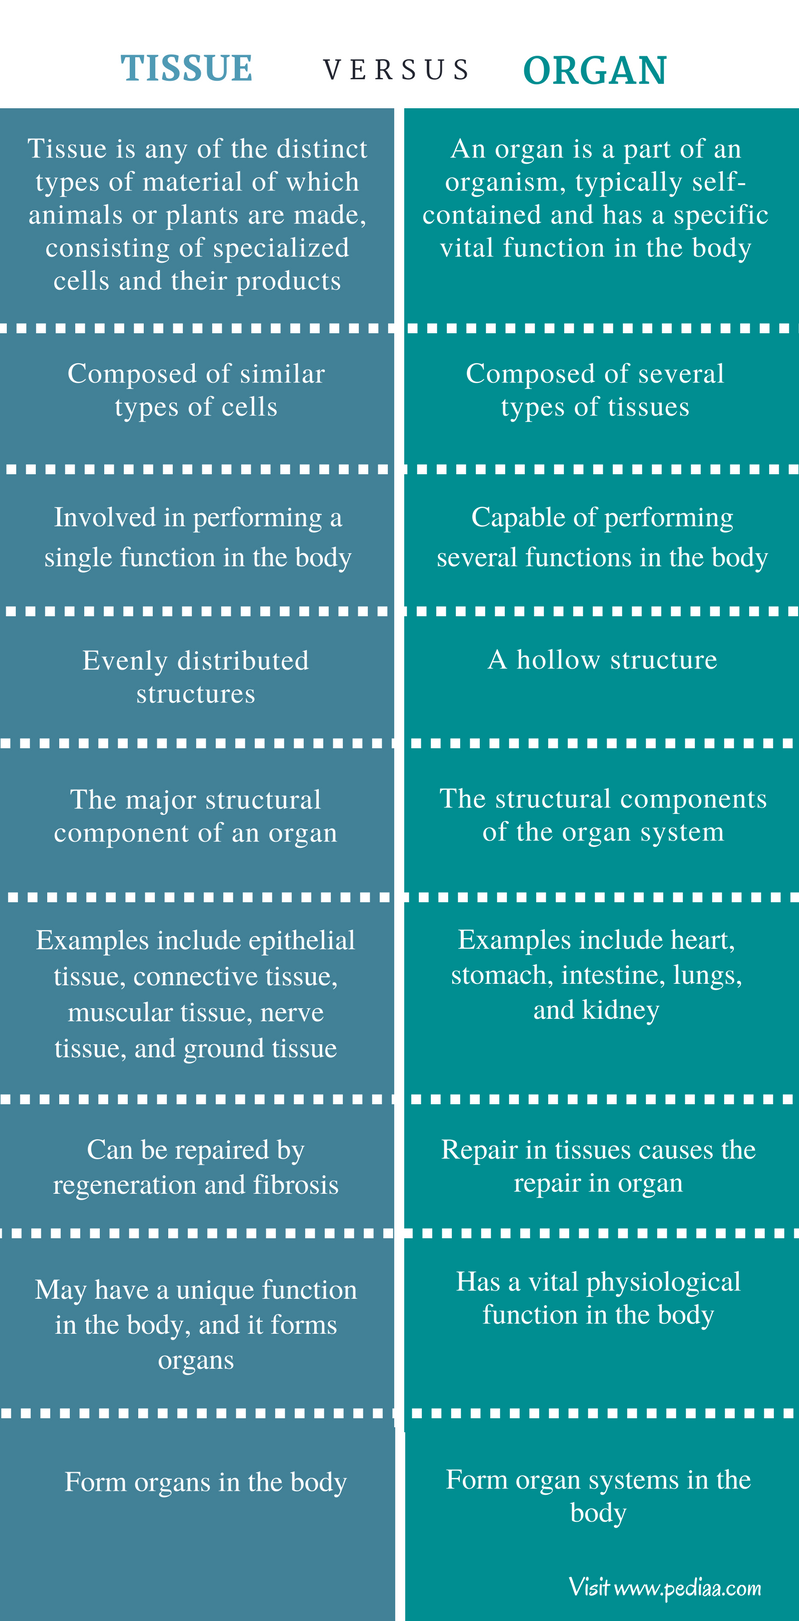 Difference Between Tissue and Organ - Comparison Summary